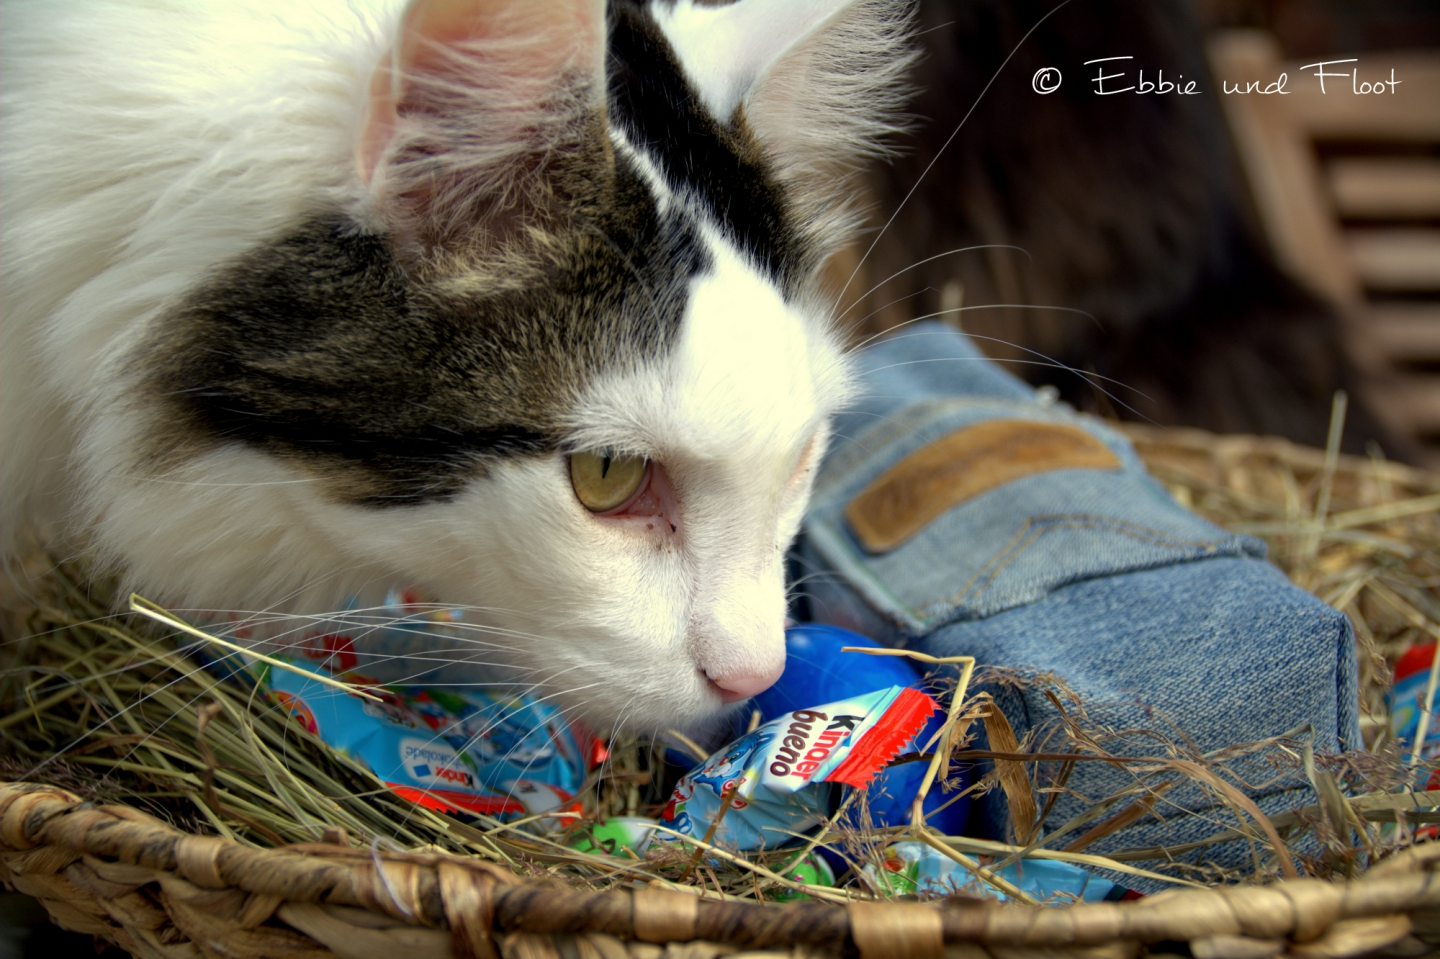 ebbie-und-floot_denim_Jeans_Flaschentasch_Flata_upcycling_Maine-coon_0018.NEF